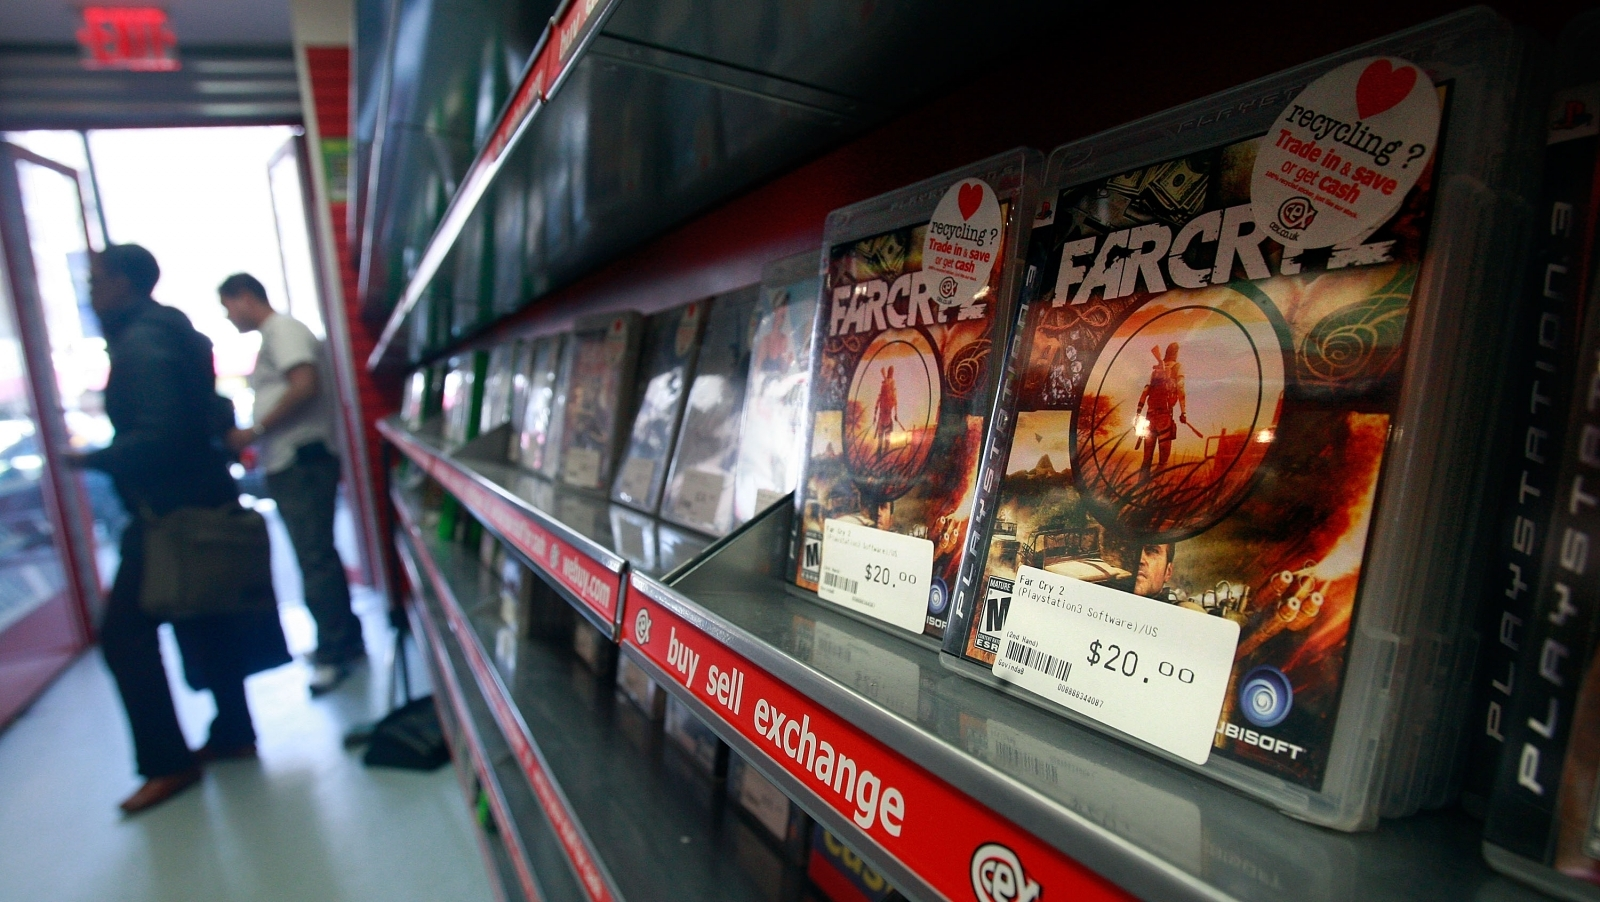 Million CeX Customers Affected in 'Sophisticated' Data Breach